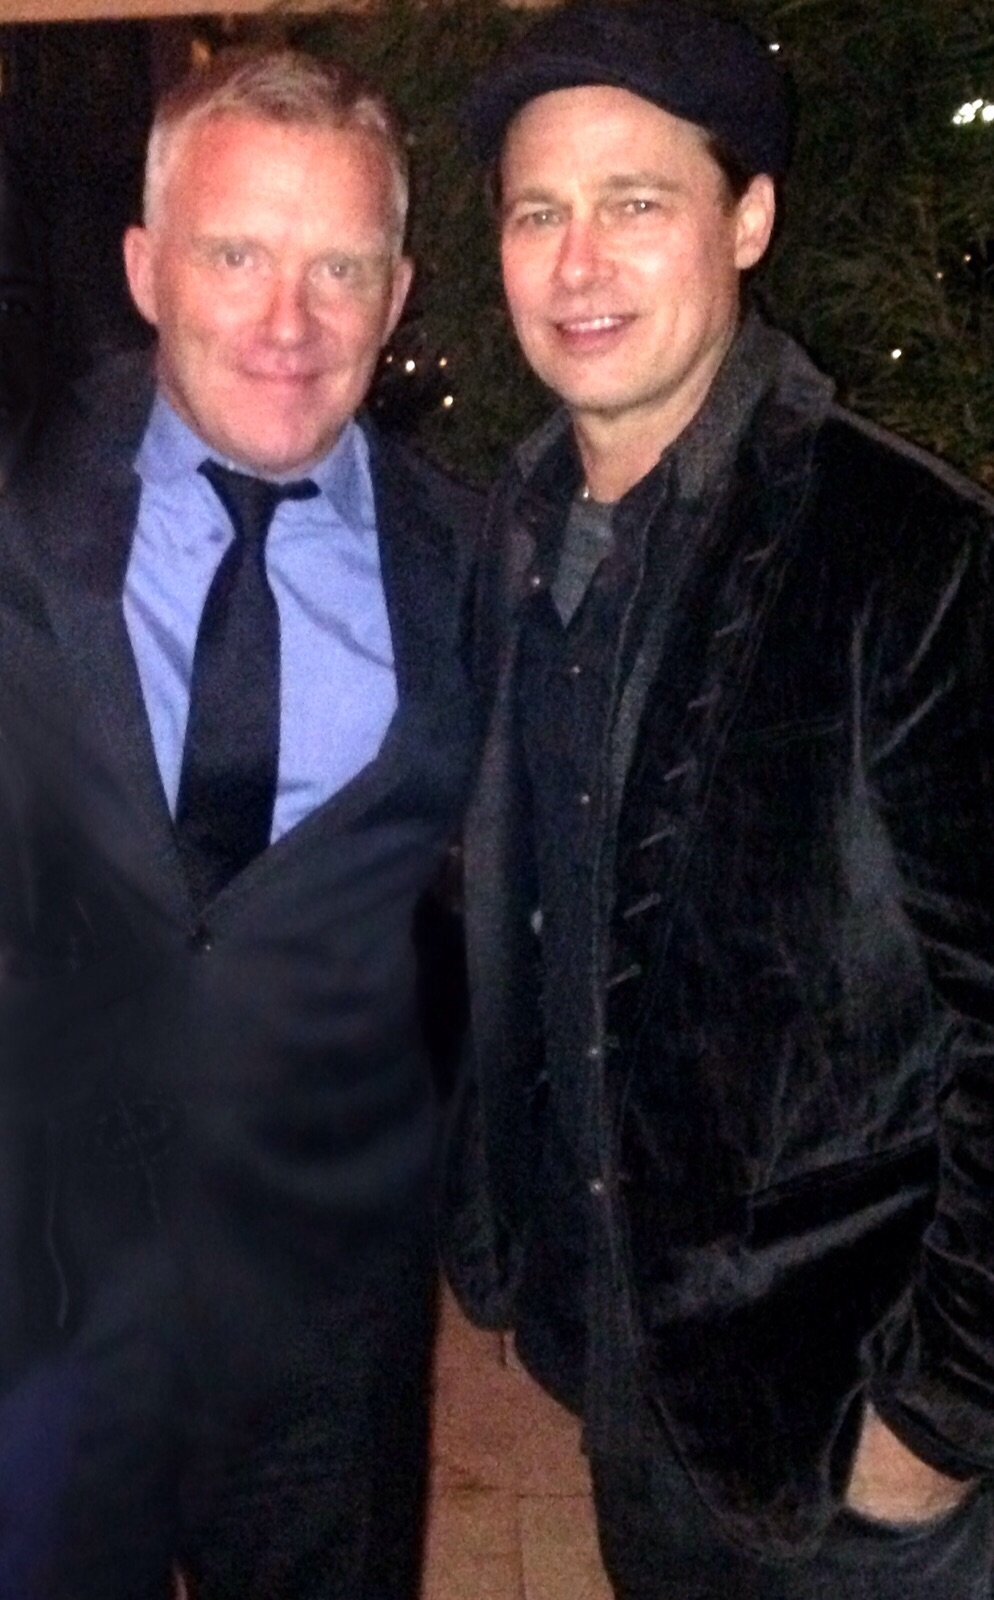 Me and Mr. Pitt @ the wrap party for 'War Machine.'Berlin, Germany 11/21/15.